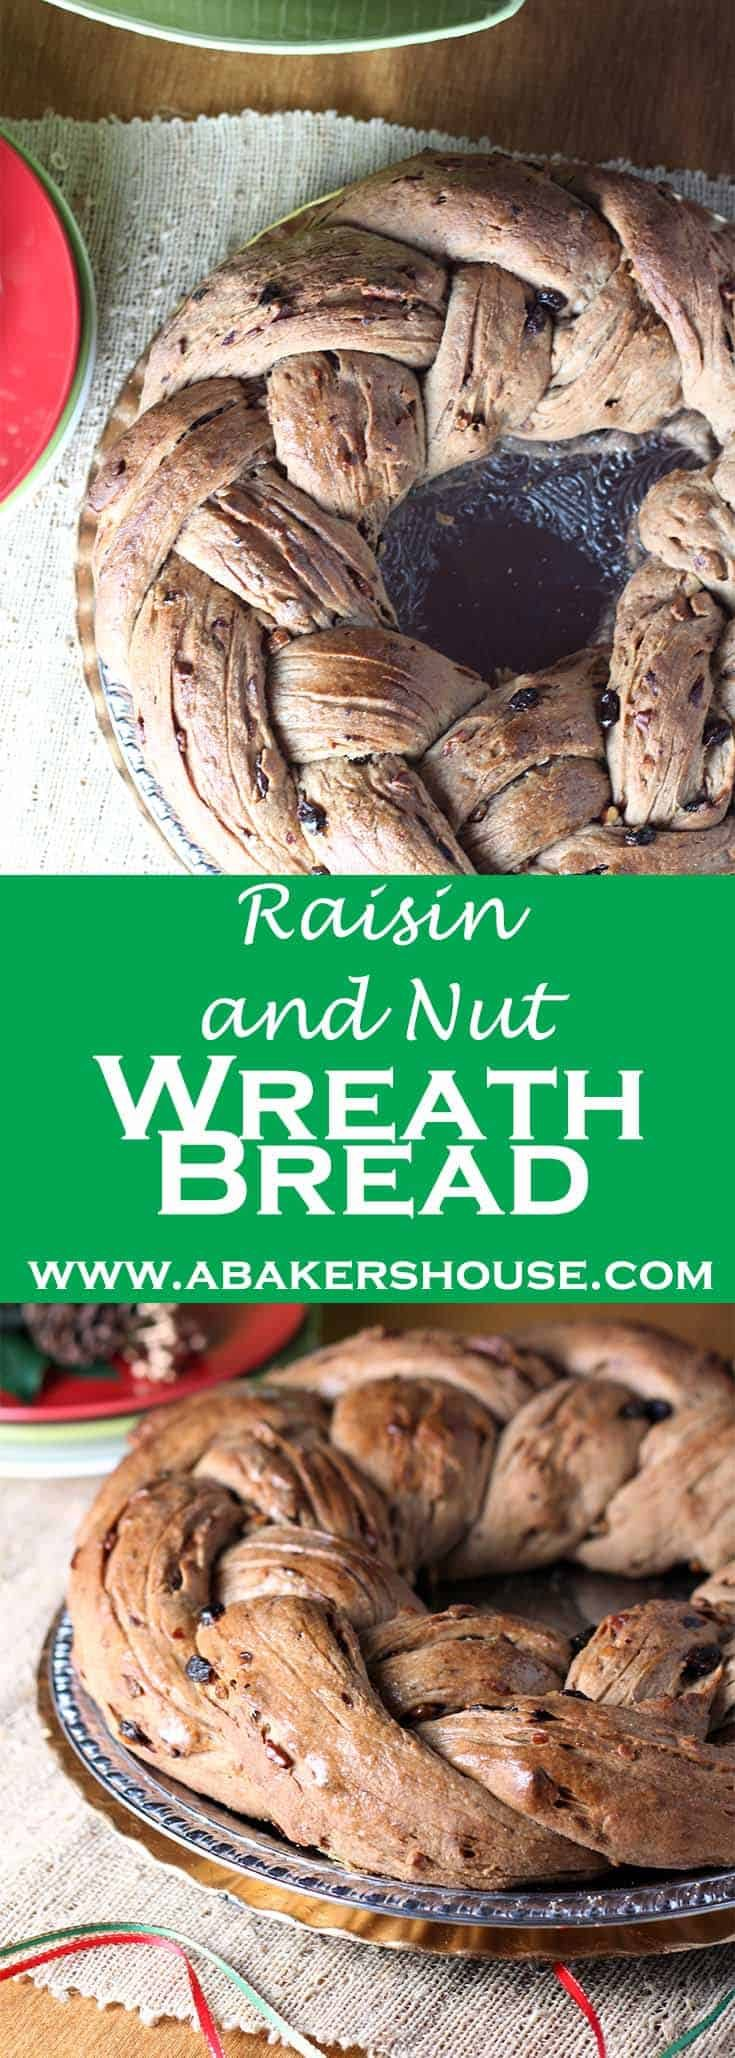 This raisin and nut wreath bread is a recipe from the website for The Telegraph, a newspaper published in the United Kingdom. I enjoy their food section and love the British take on holiday foods. #abakershouse #wreathbread #homemadebread